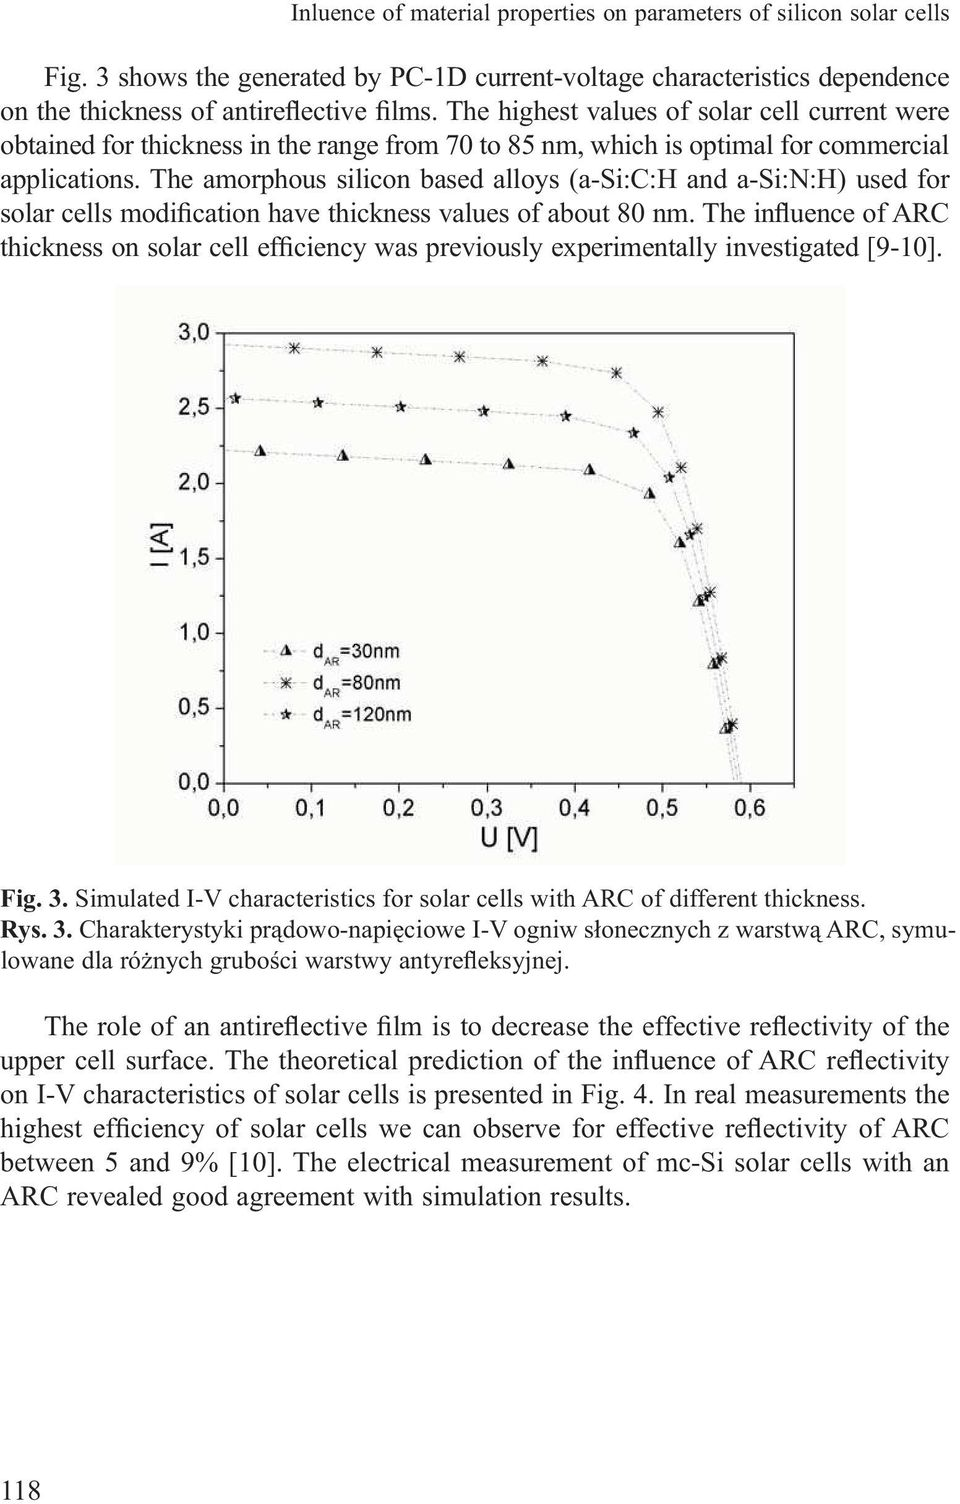 The amorphous silicon based alloys (a-si:c:h and a-si:n:h) used for solar cells modification have thickness values of about 80 nm.